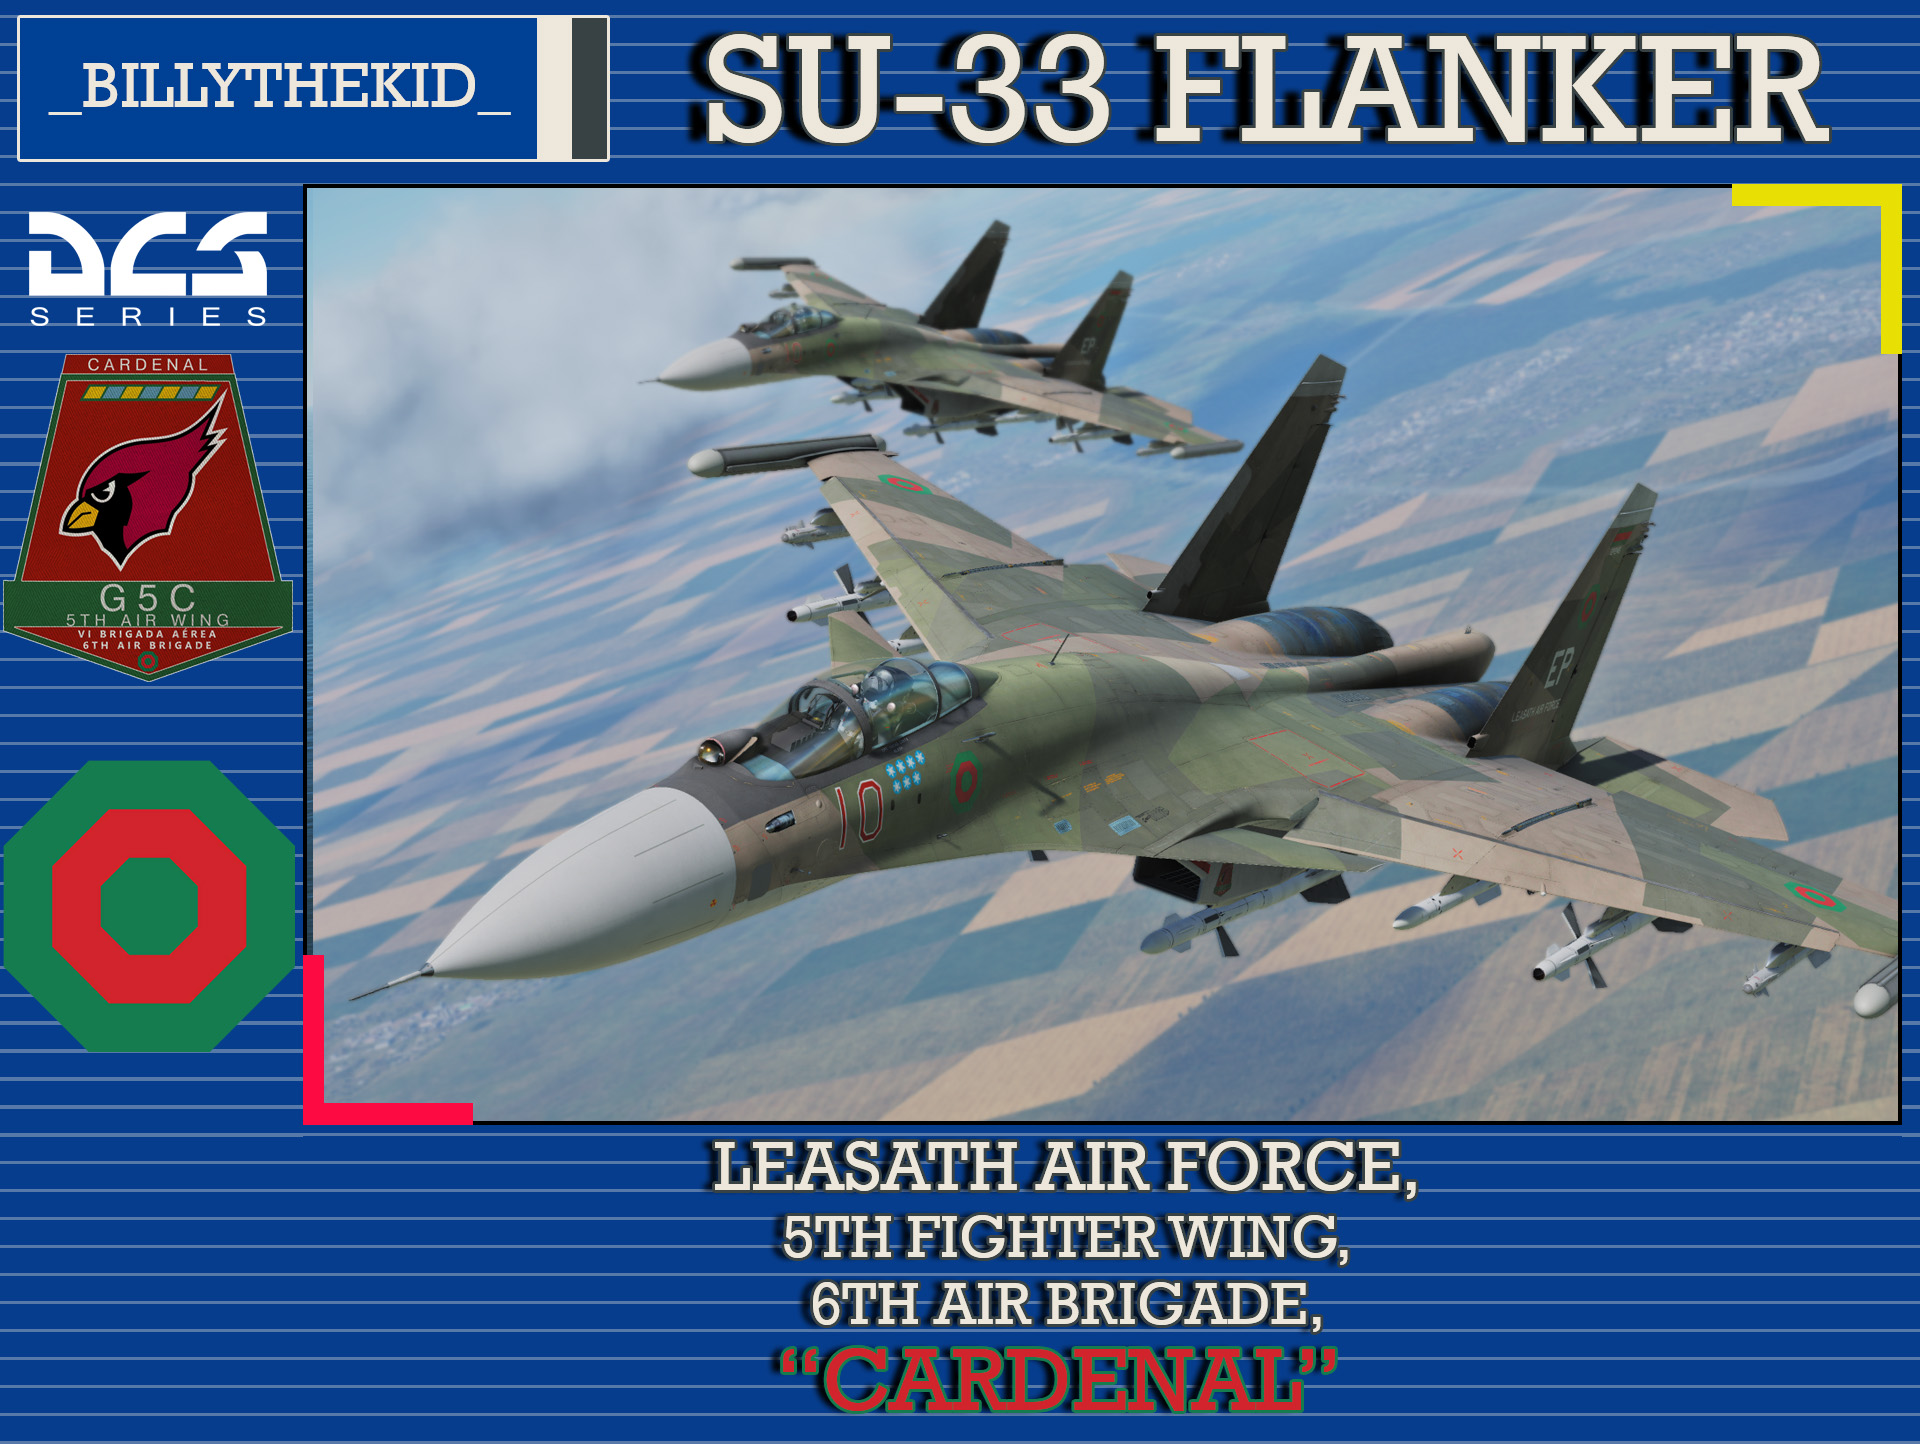 "Ace Combat - Leasath Air Force 5th Fighter Wing, 6th Air Brigade ""Cardenal"" SU-33 Flanker"